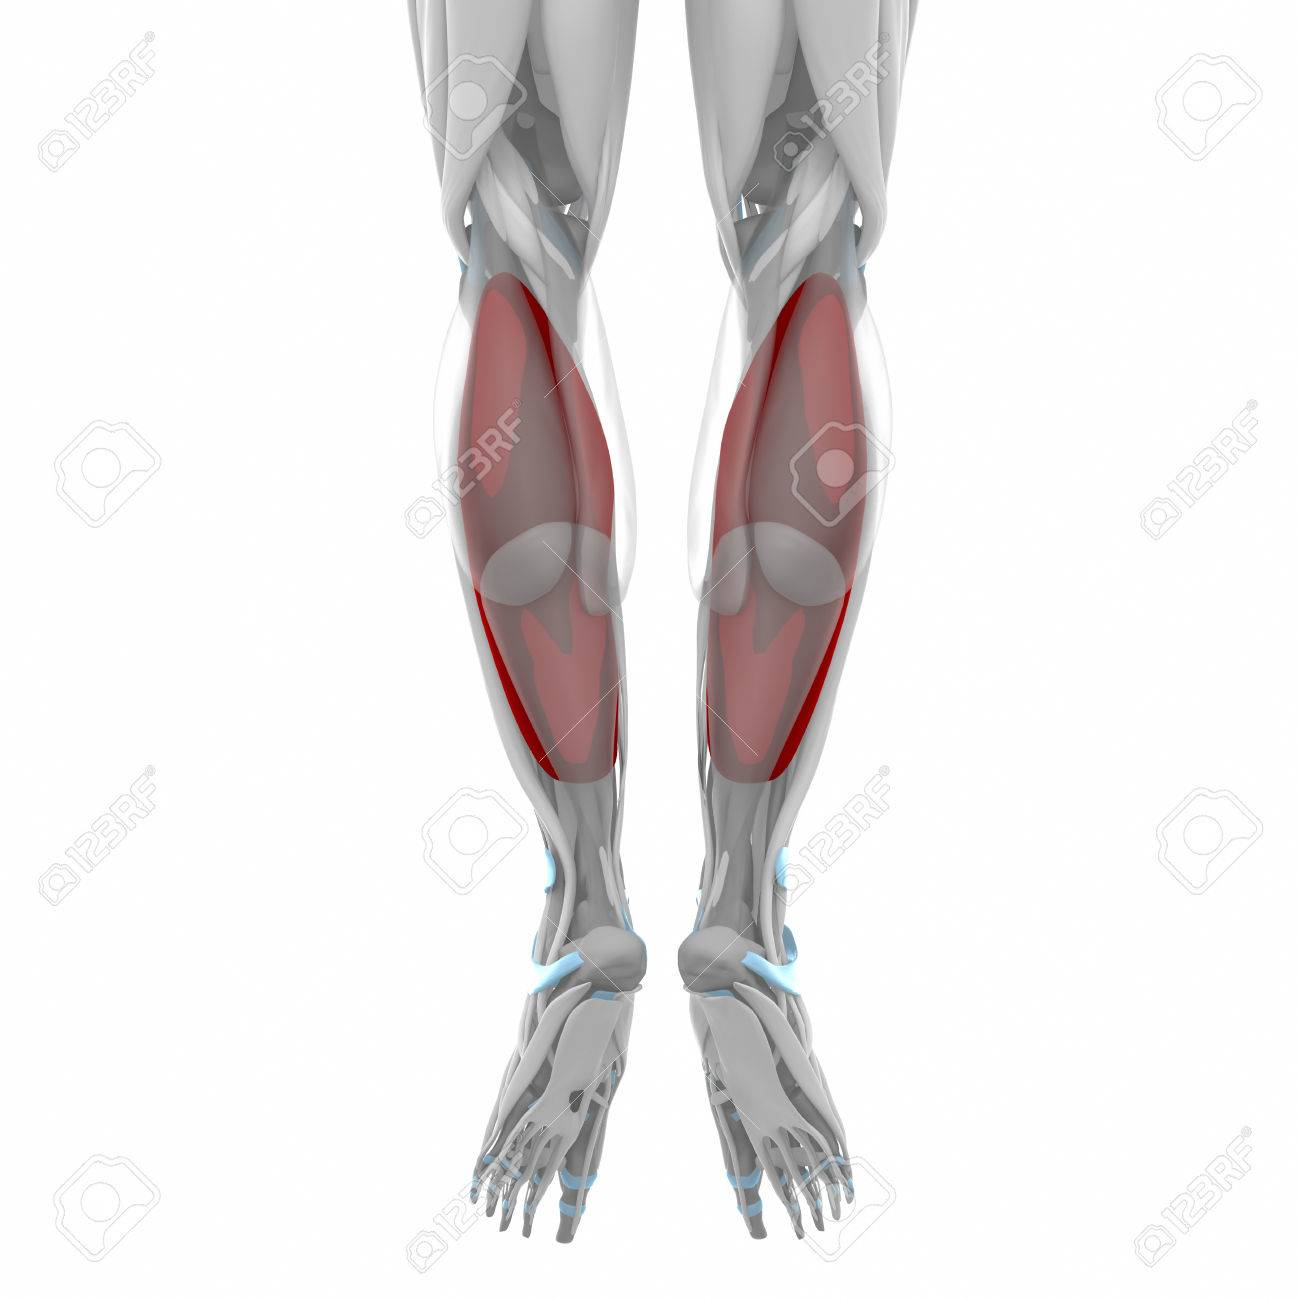 Soleus Muscles Anatomy Map Stock Photo Picture And Royalty Free